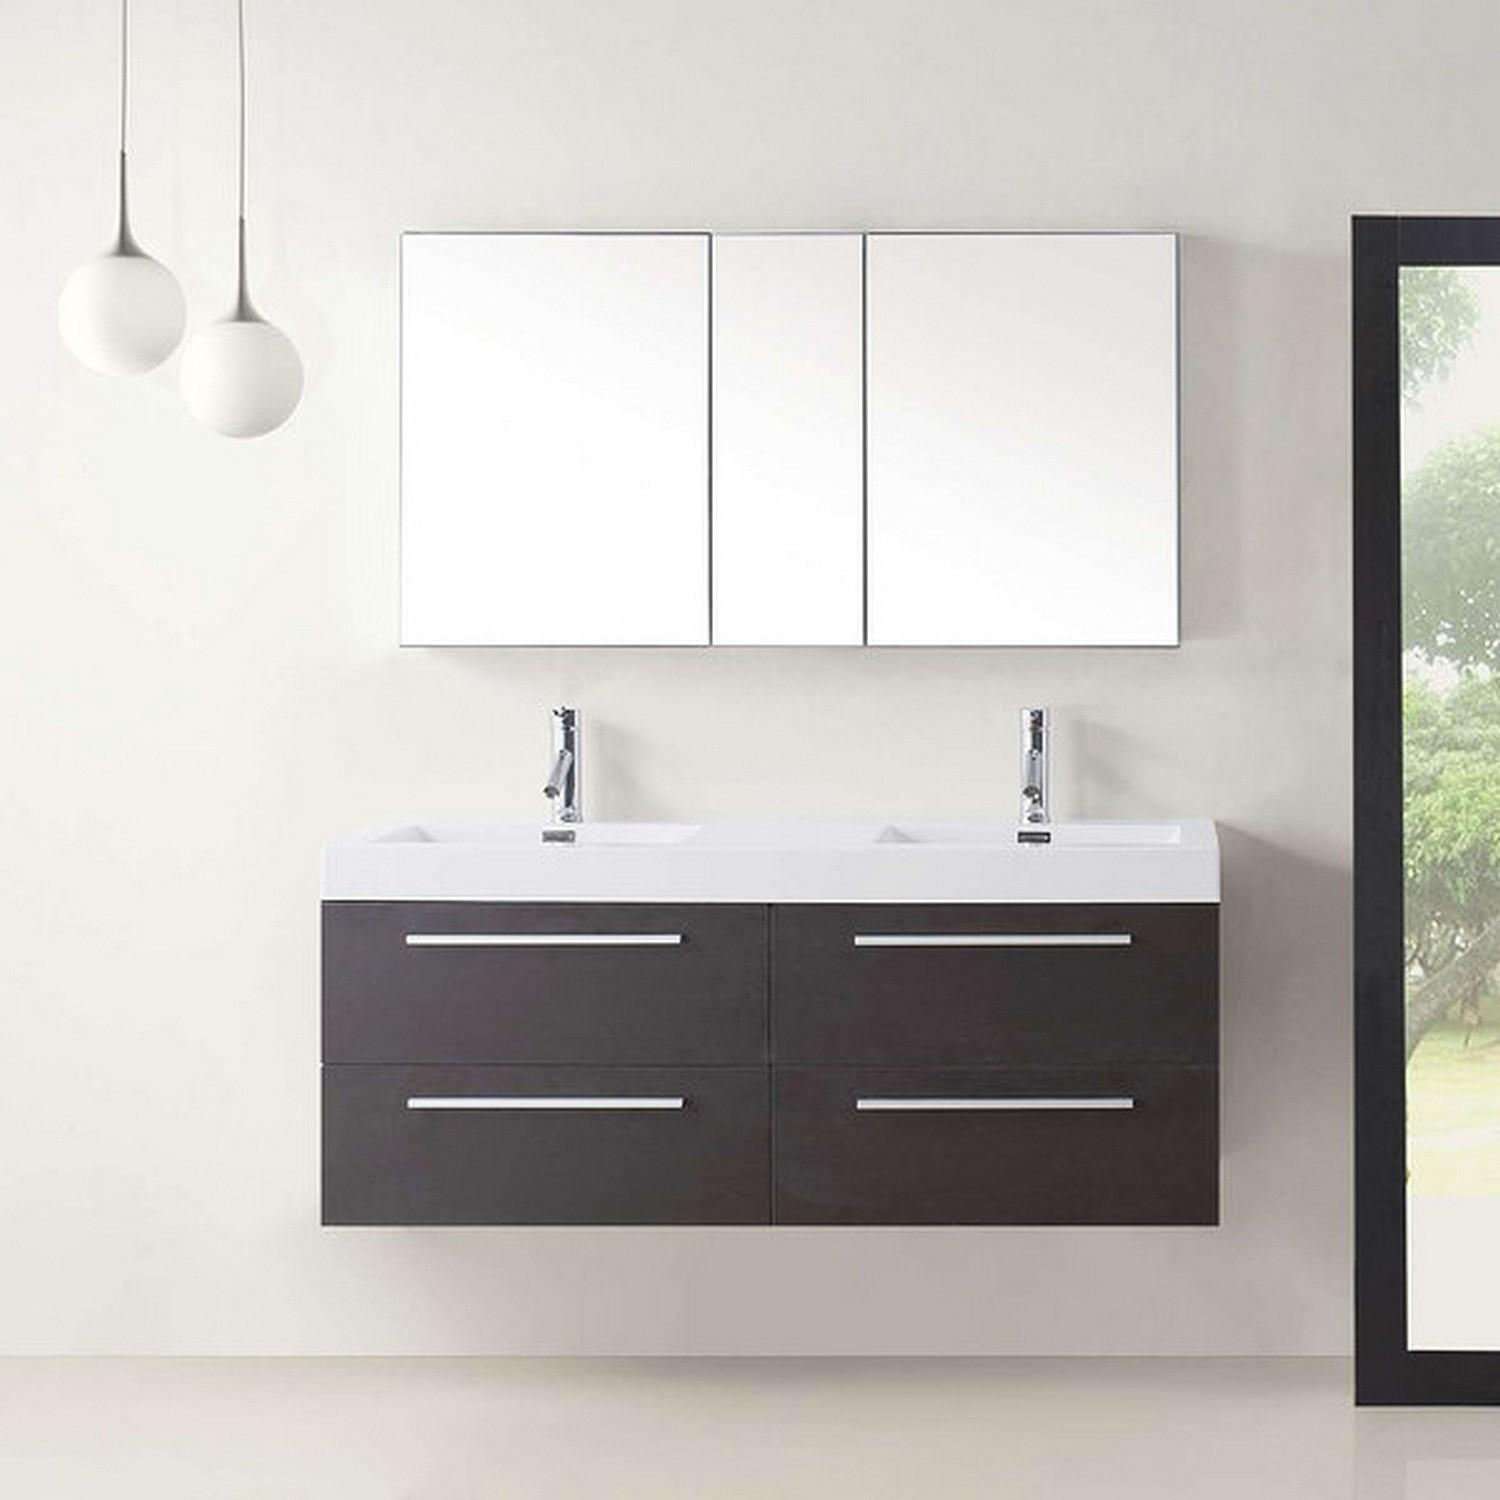 34 Stunning Pictures Of Modern Minimalist Bathroom Floating Vanities That Will Turn Your Junk Into Treasure Fantastic Pictures Decoratorist